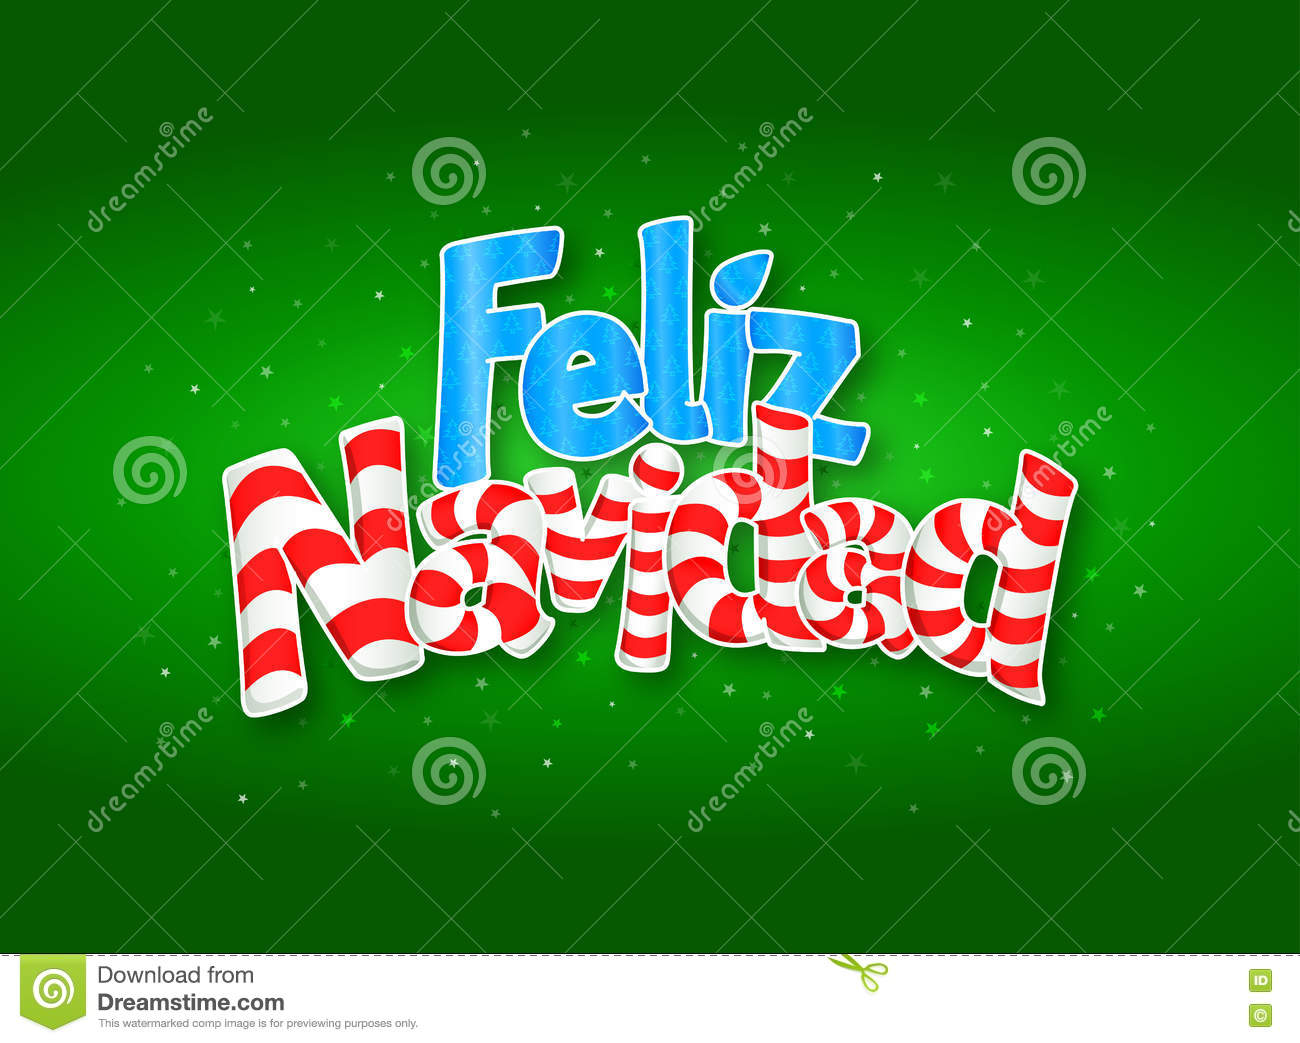 download feliz navidad merry christmas in spanish language green cover of greeting card with